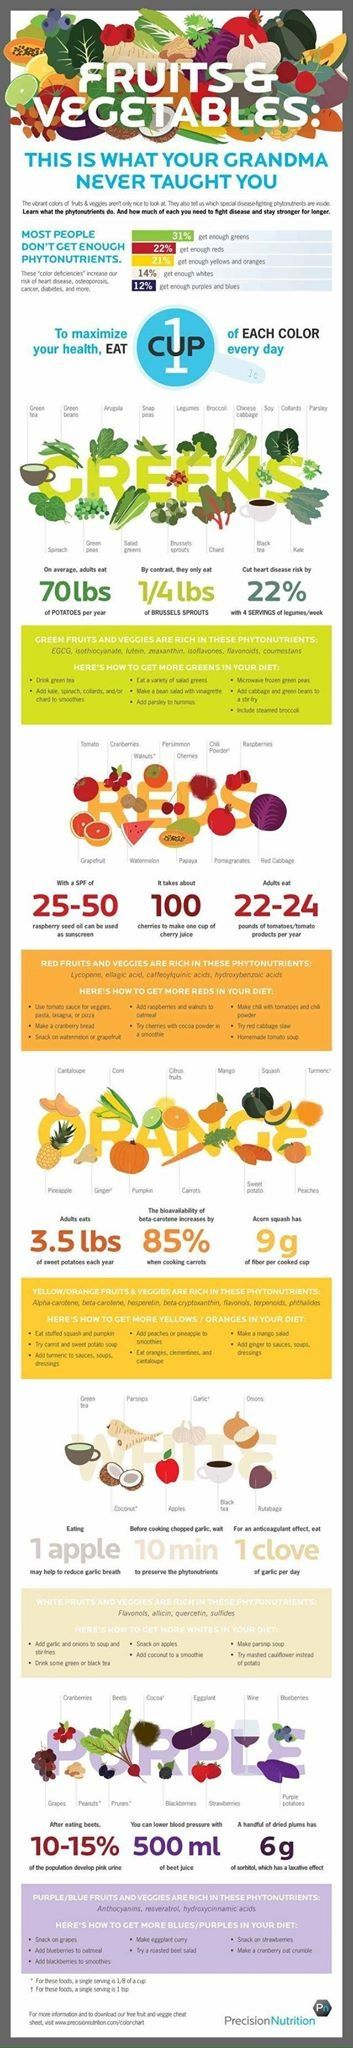 Cool food facts! From the Dancer Project